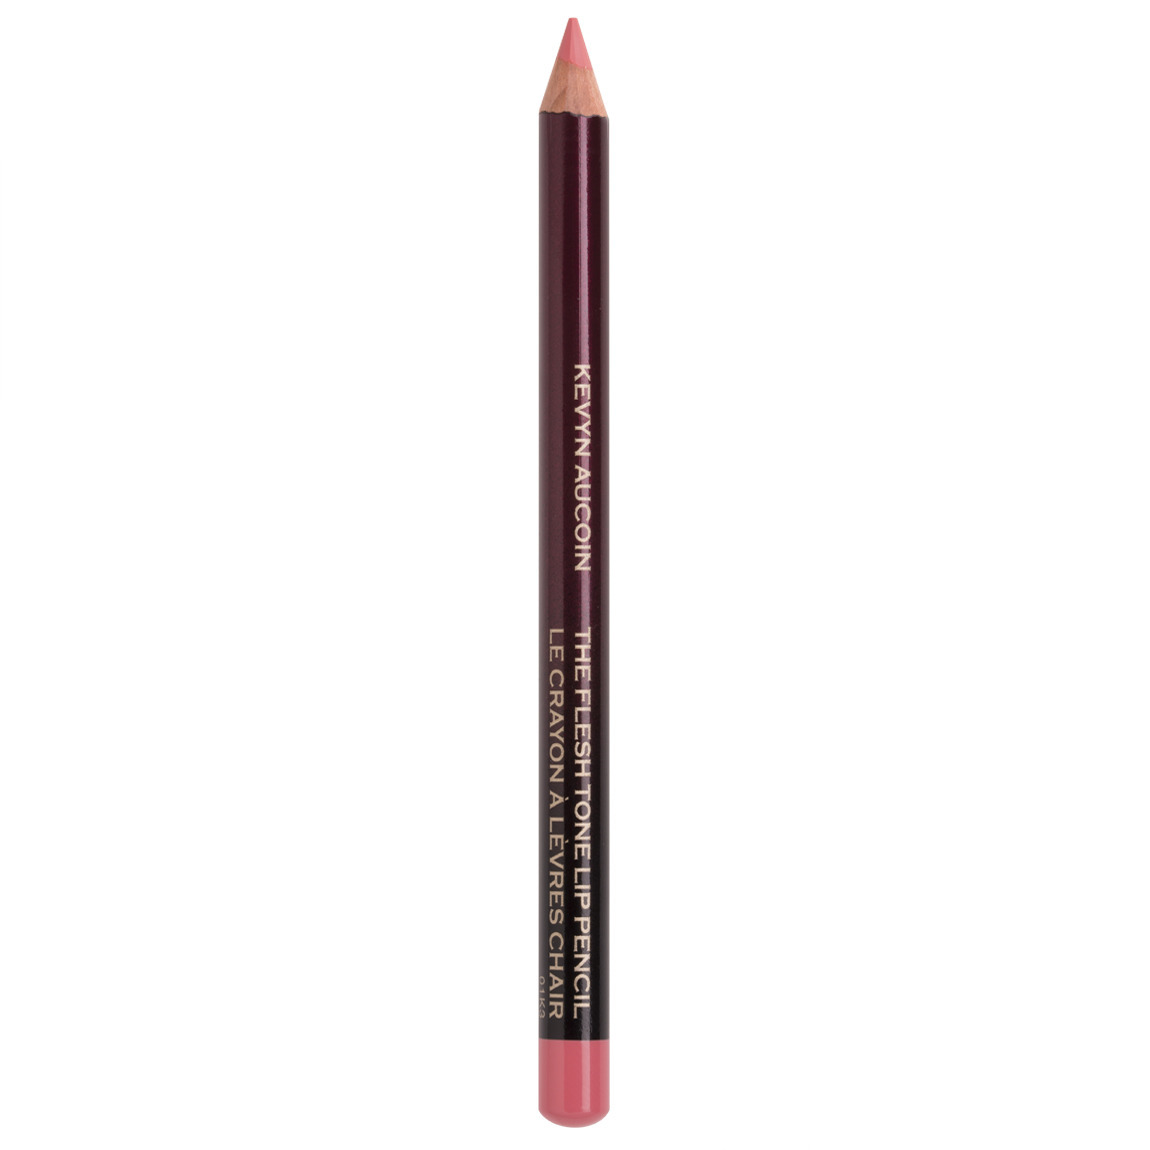 Kevyn Aucoin The Flesh Tone Lip Pencil Peche